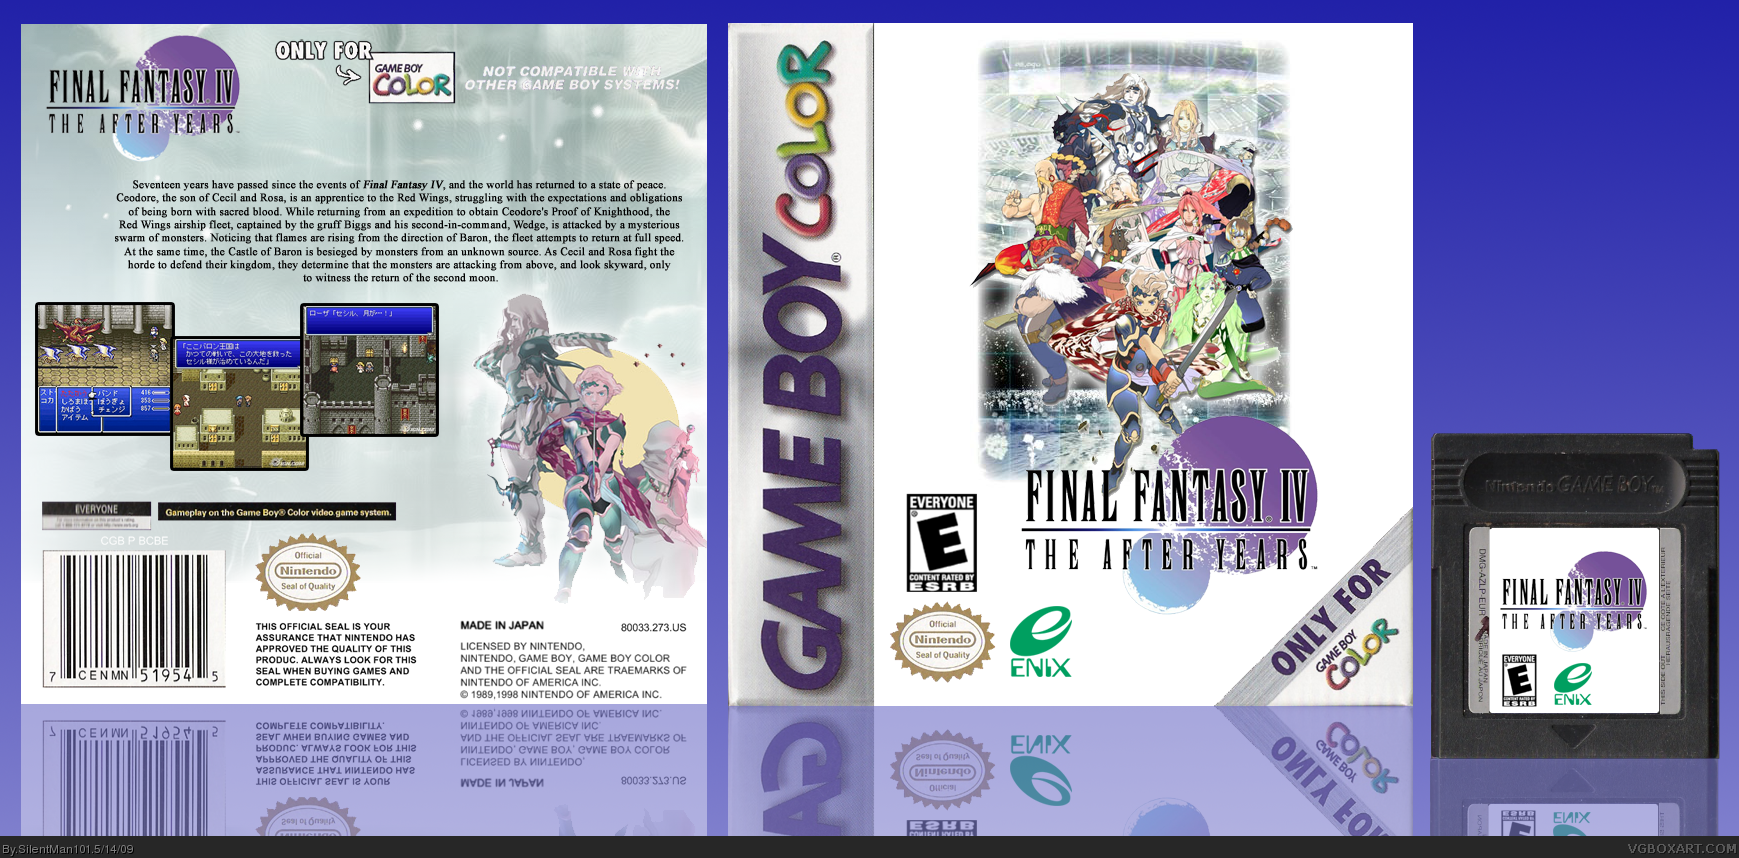 Final Fantasy IV: The After Years box cover